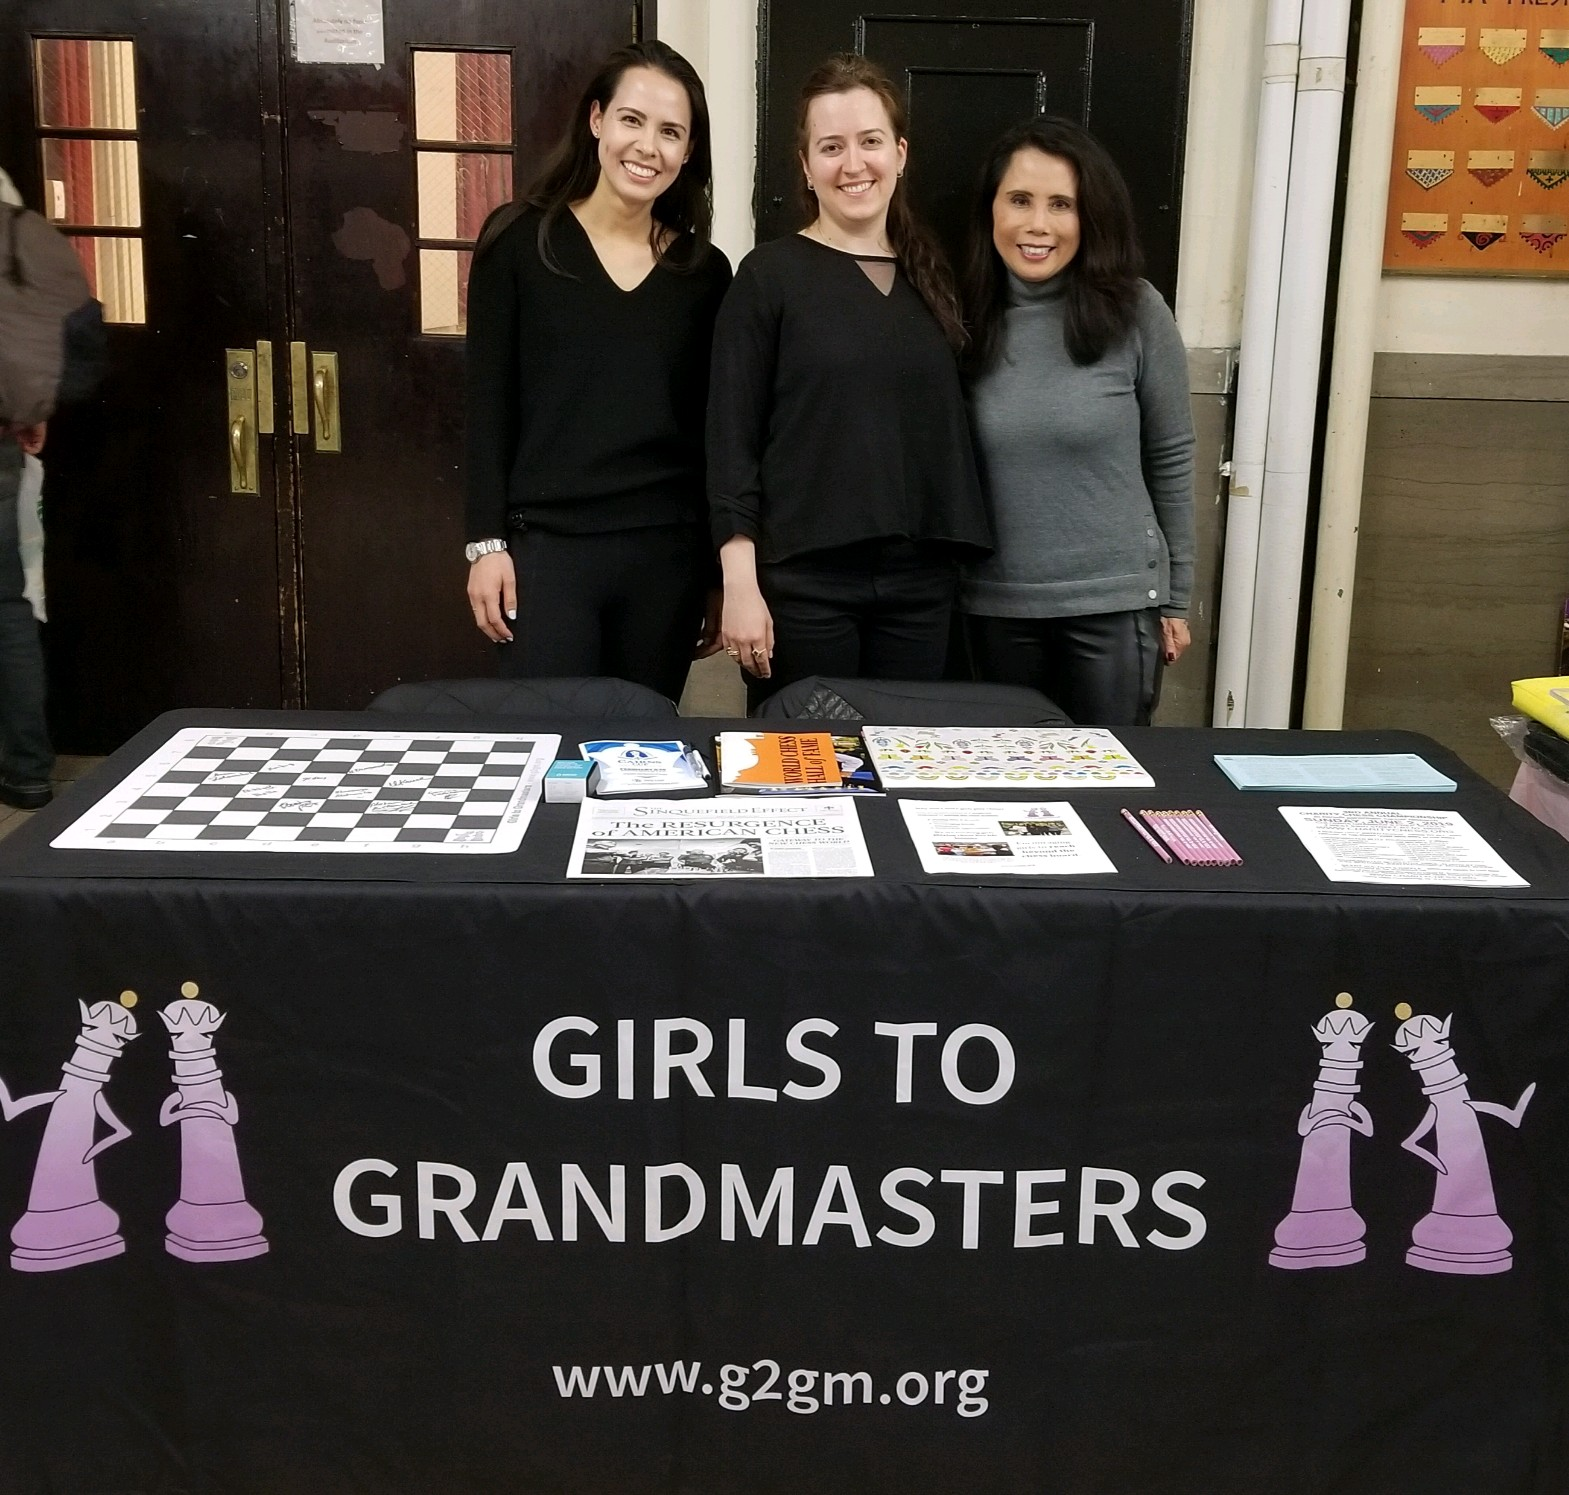 Karsten, Grandmaster Irina Krush, and VP Kimberly at the All Girls NYC Chess Championship, hosted by Chess in the Schools.